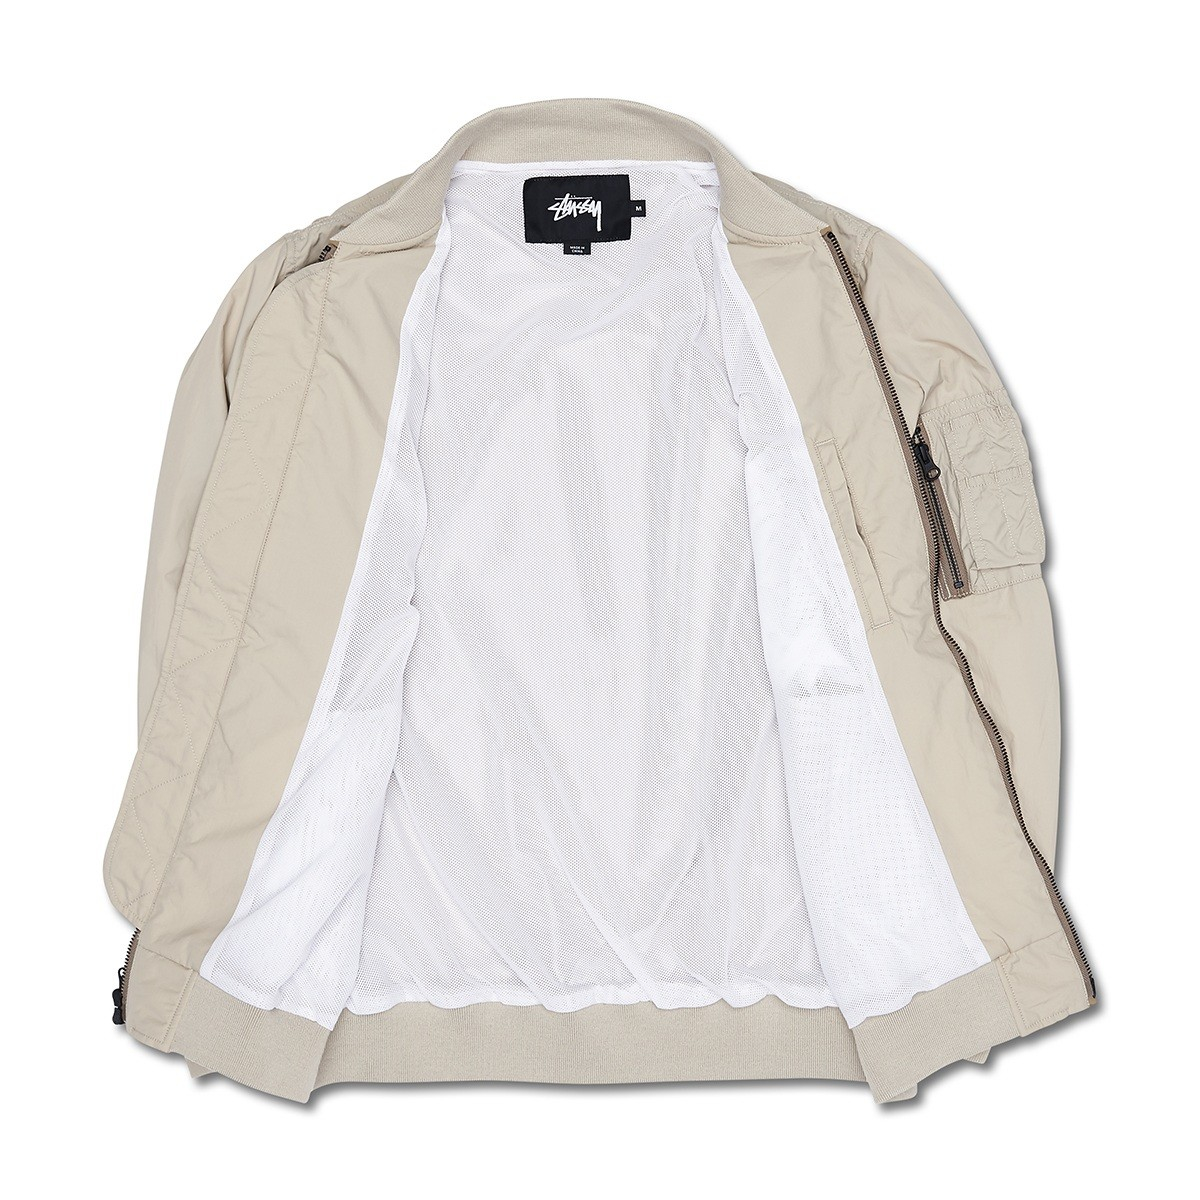 Stussy Synthetic Nylon Bomber Jacket in Beige (Grey) for Men